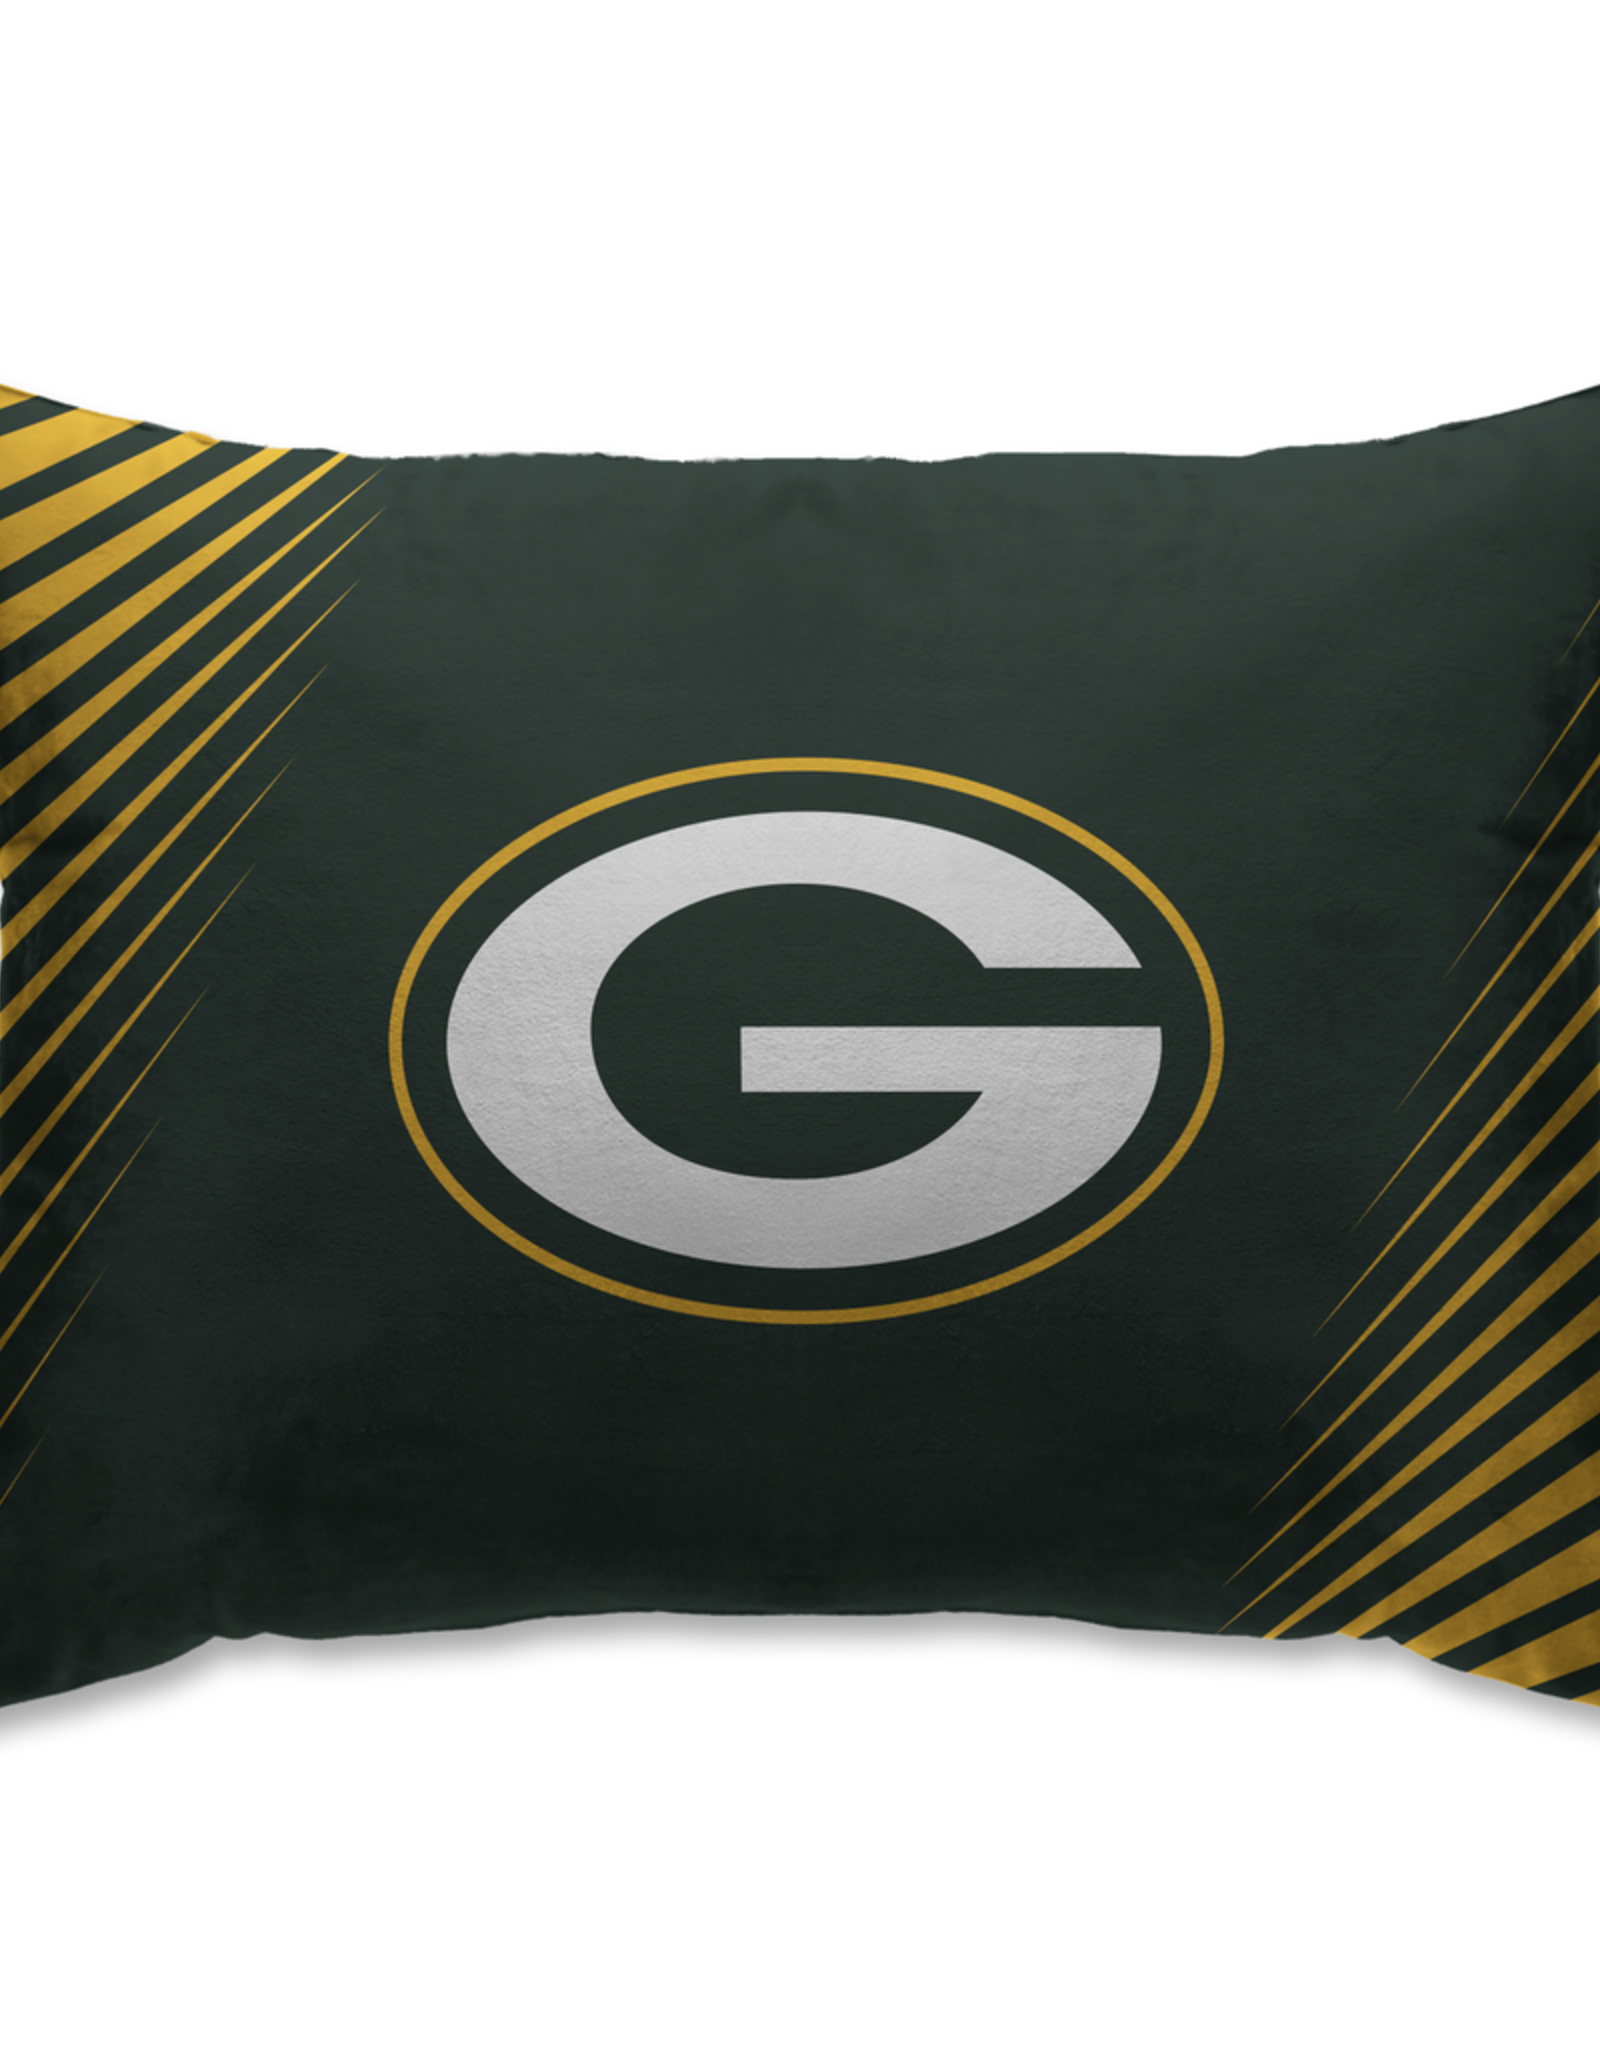 HOVER HELMETS Green Bay Packers Side Streak Microplush Pillow Protector